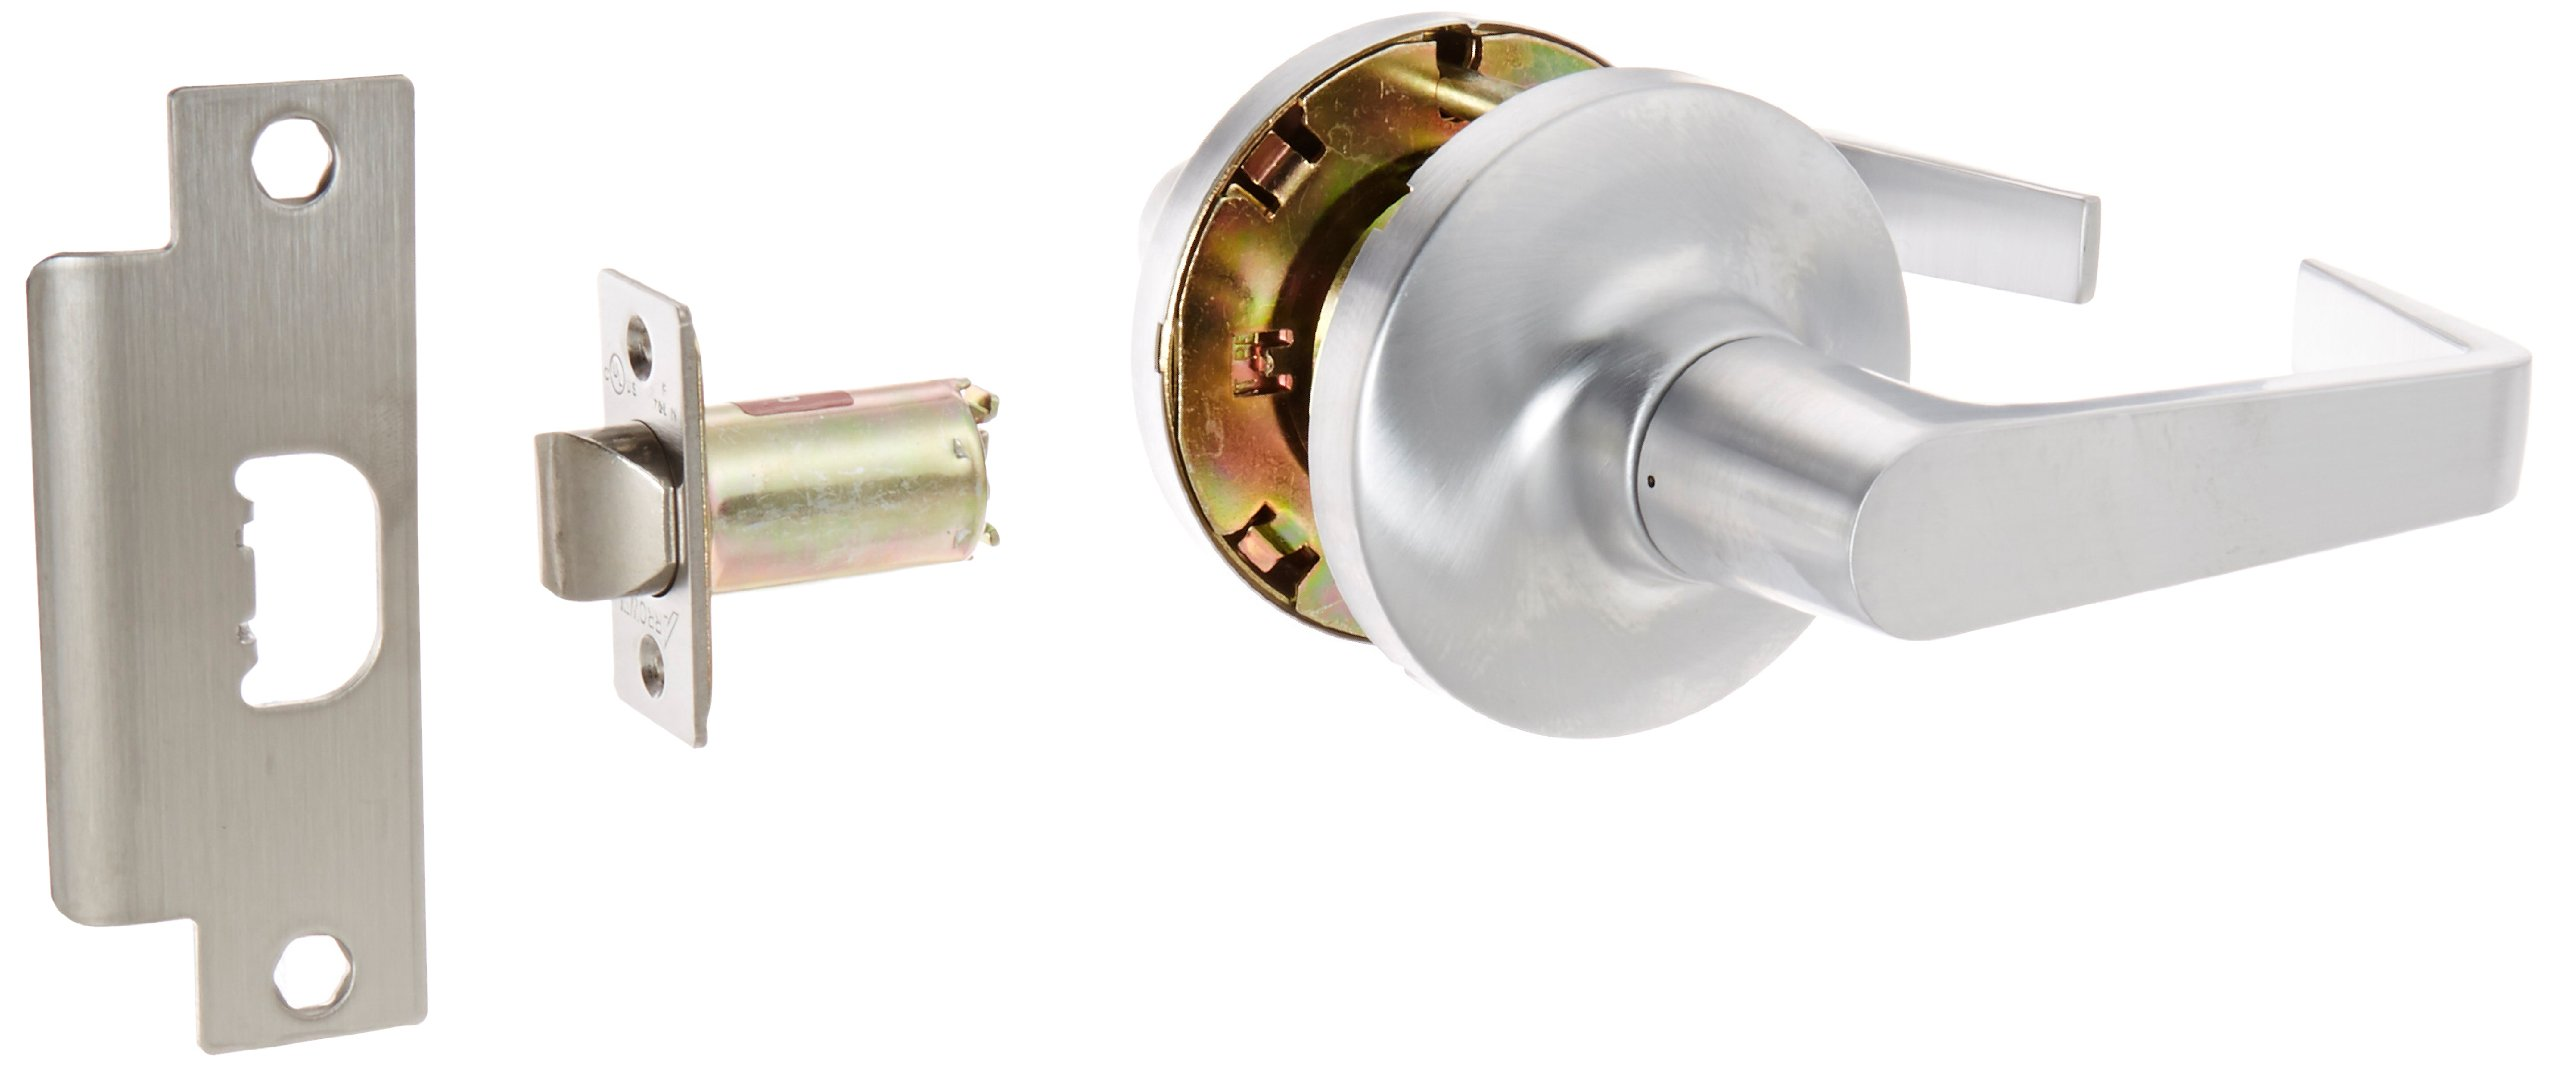 Pack of 1 1-3//8 to 1-3//4 Door Thickness Arrow Lock E Series Satin Chromium Occupancy Indicator Deadbolt Auxiliary Lock with Interchangeable Core